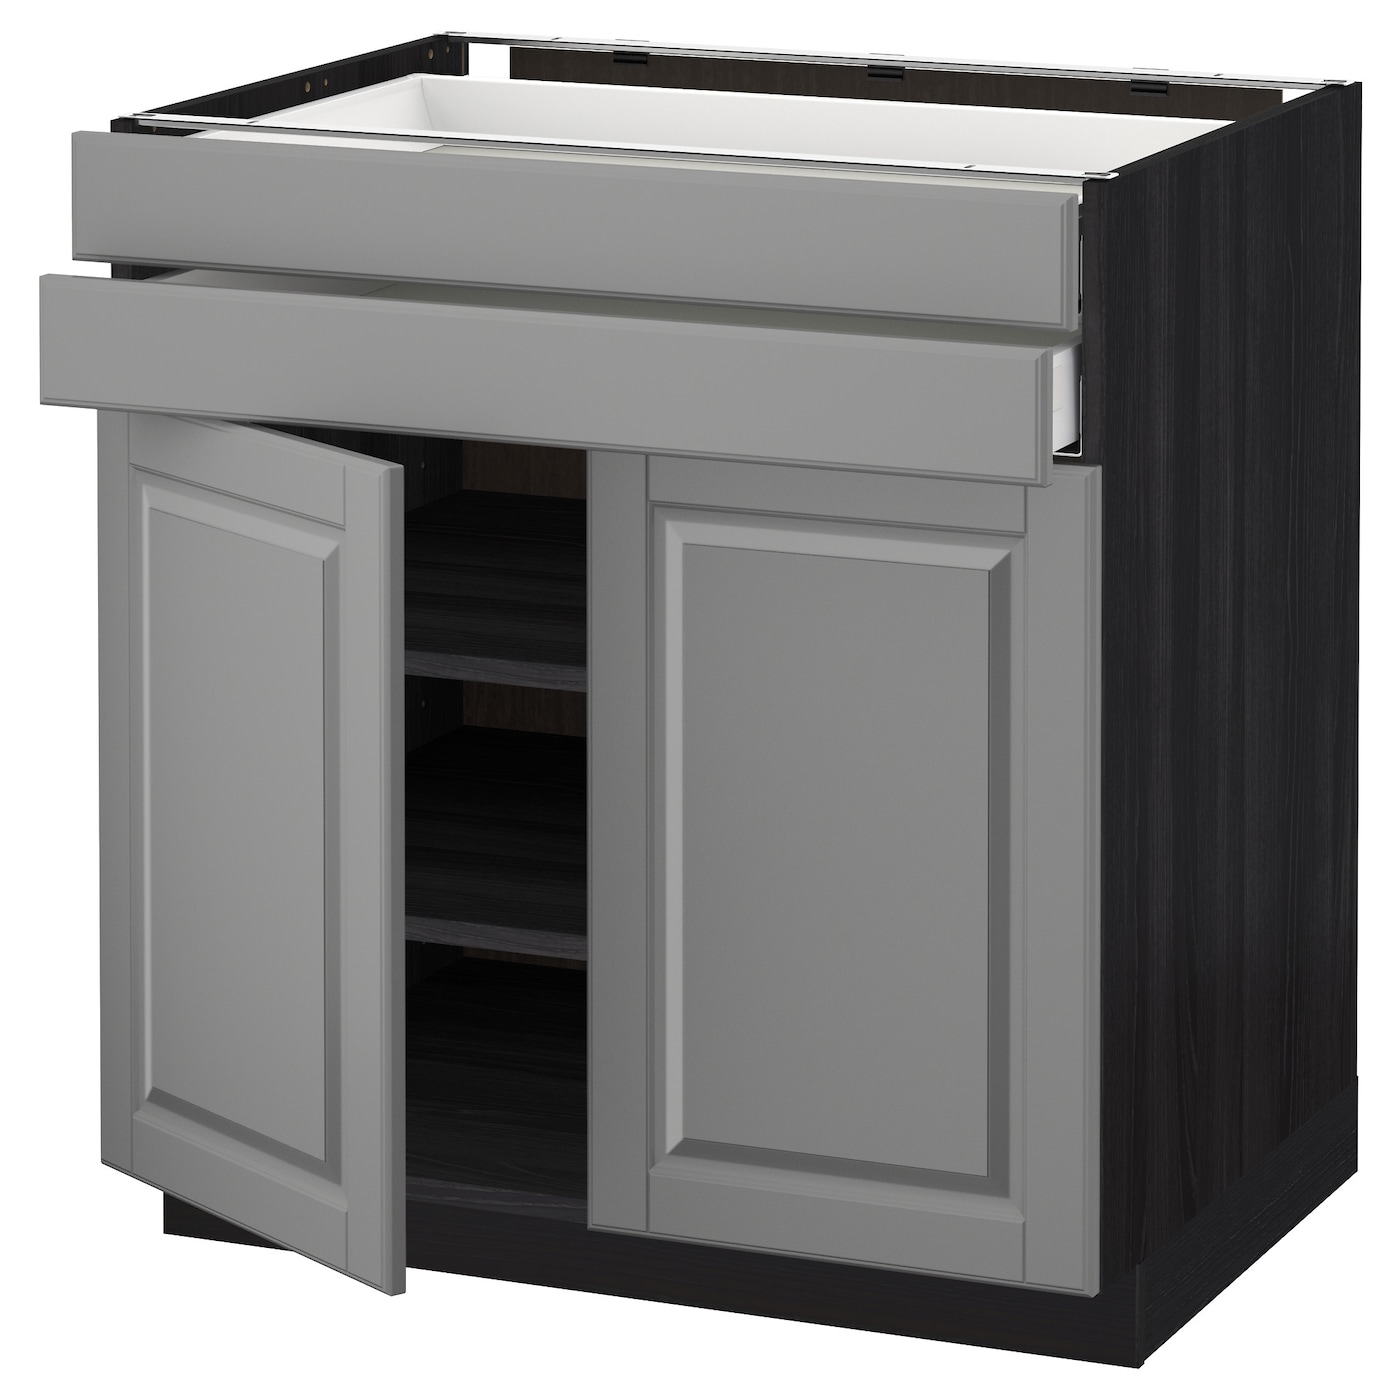 metod maximera base cabinet w 2 doors 2 drawers black bodbyn grey 80 x 60 cm ikea. Black Bedroom Furniture Sets. Home Design Ideas